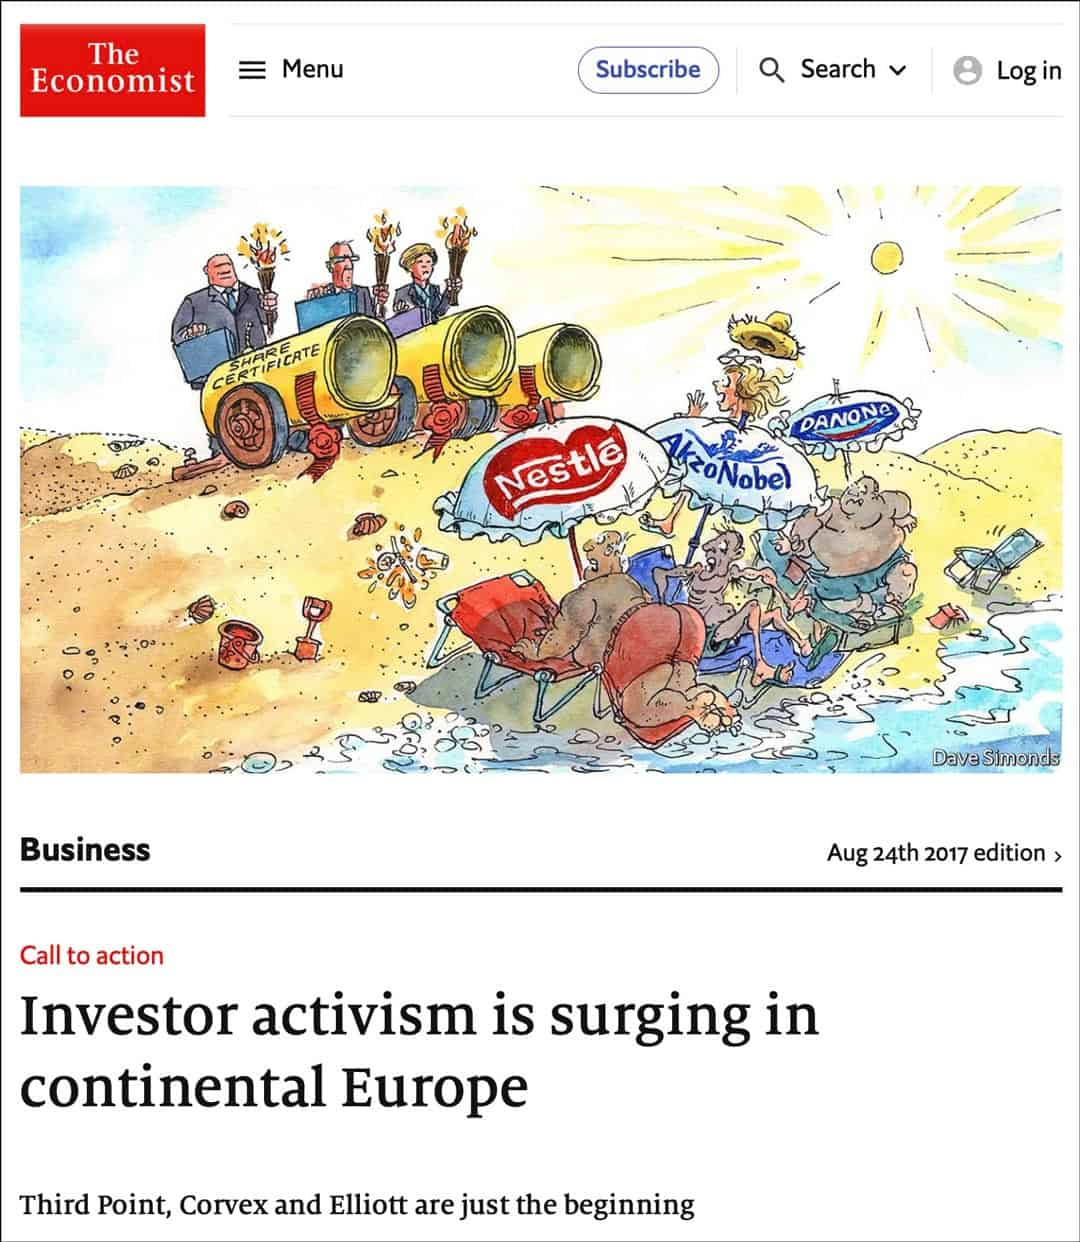 Economist - Investor activism is surging in continental Europe